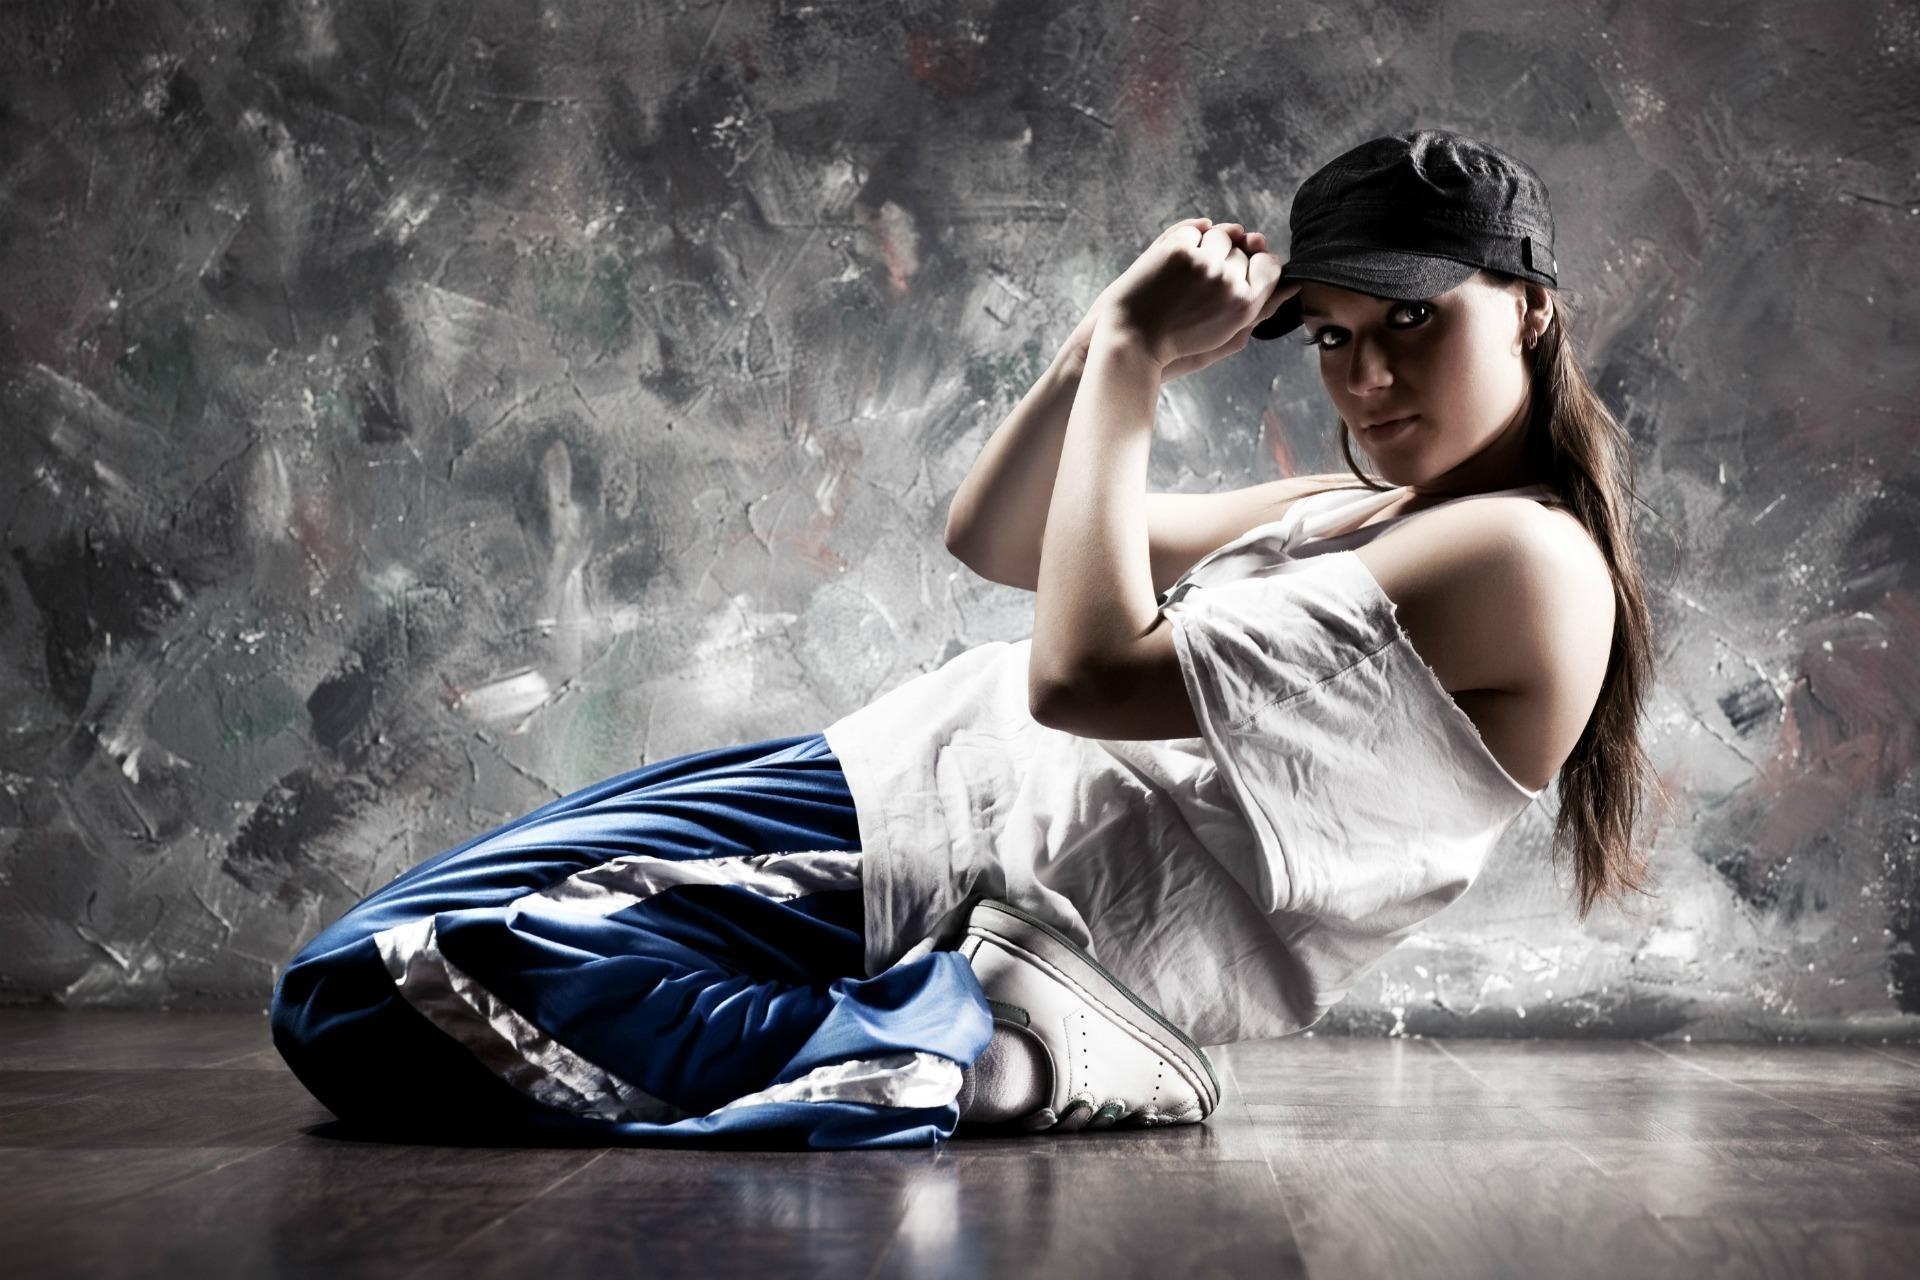 Hip Hop Dance Girl Wallpaper IPhone Wallpaper WallpaperLepi 1920x1280